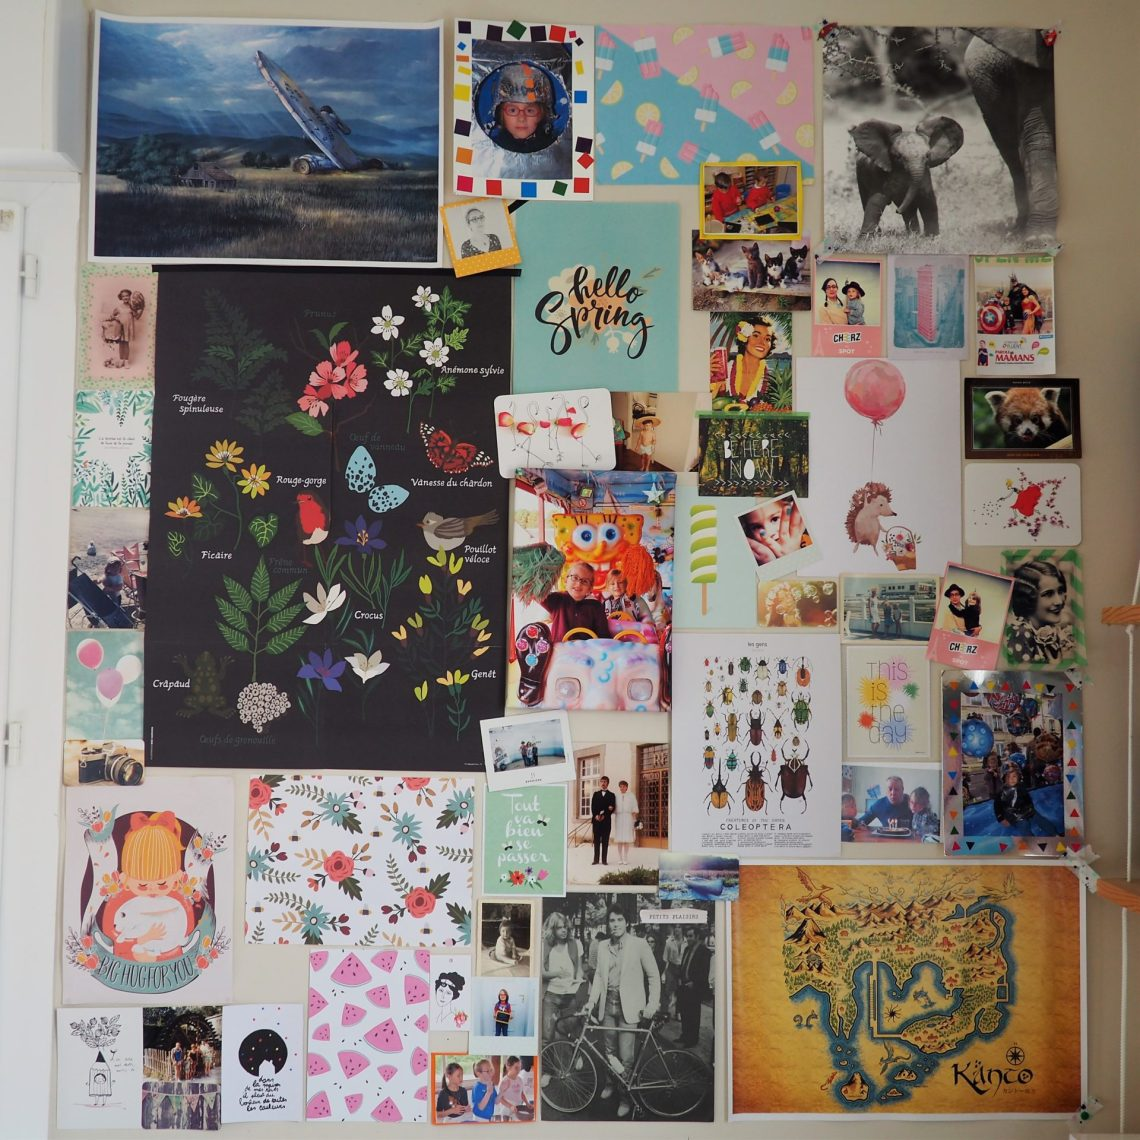 Cheerz - mur d'image toile